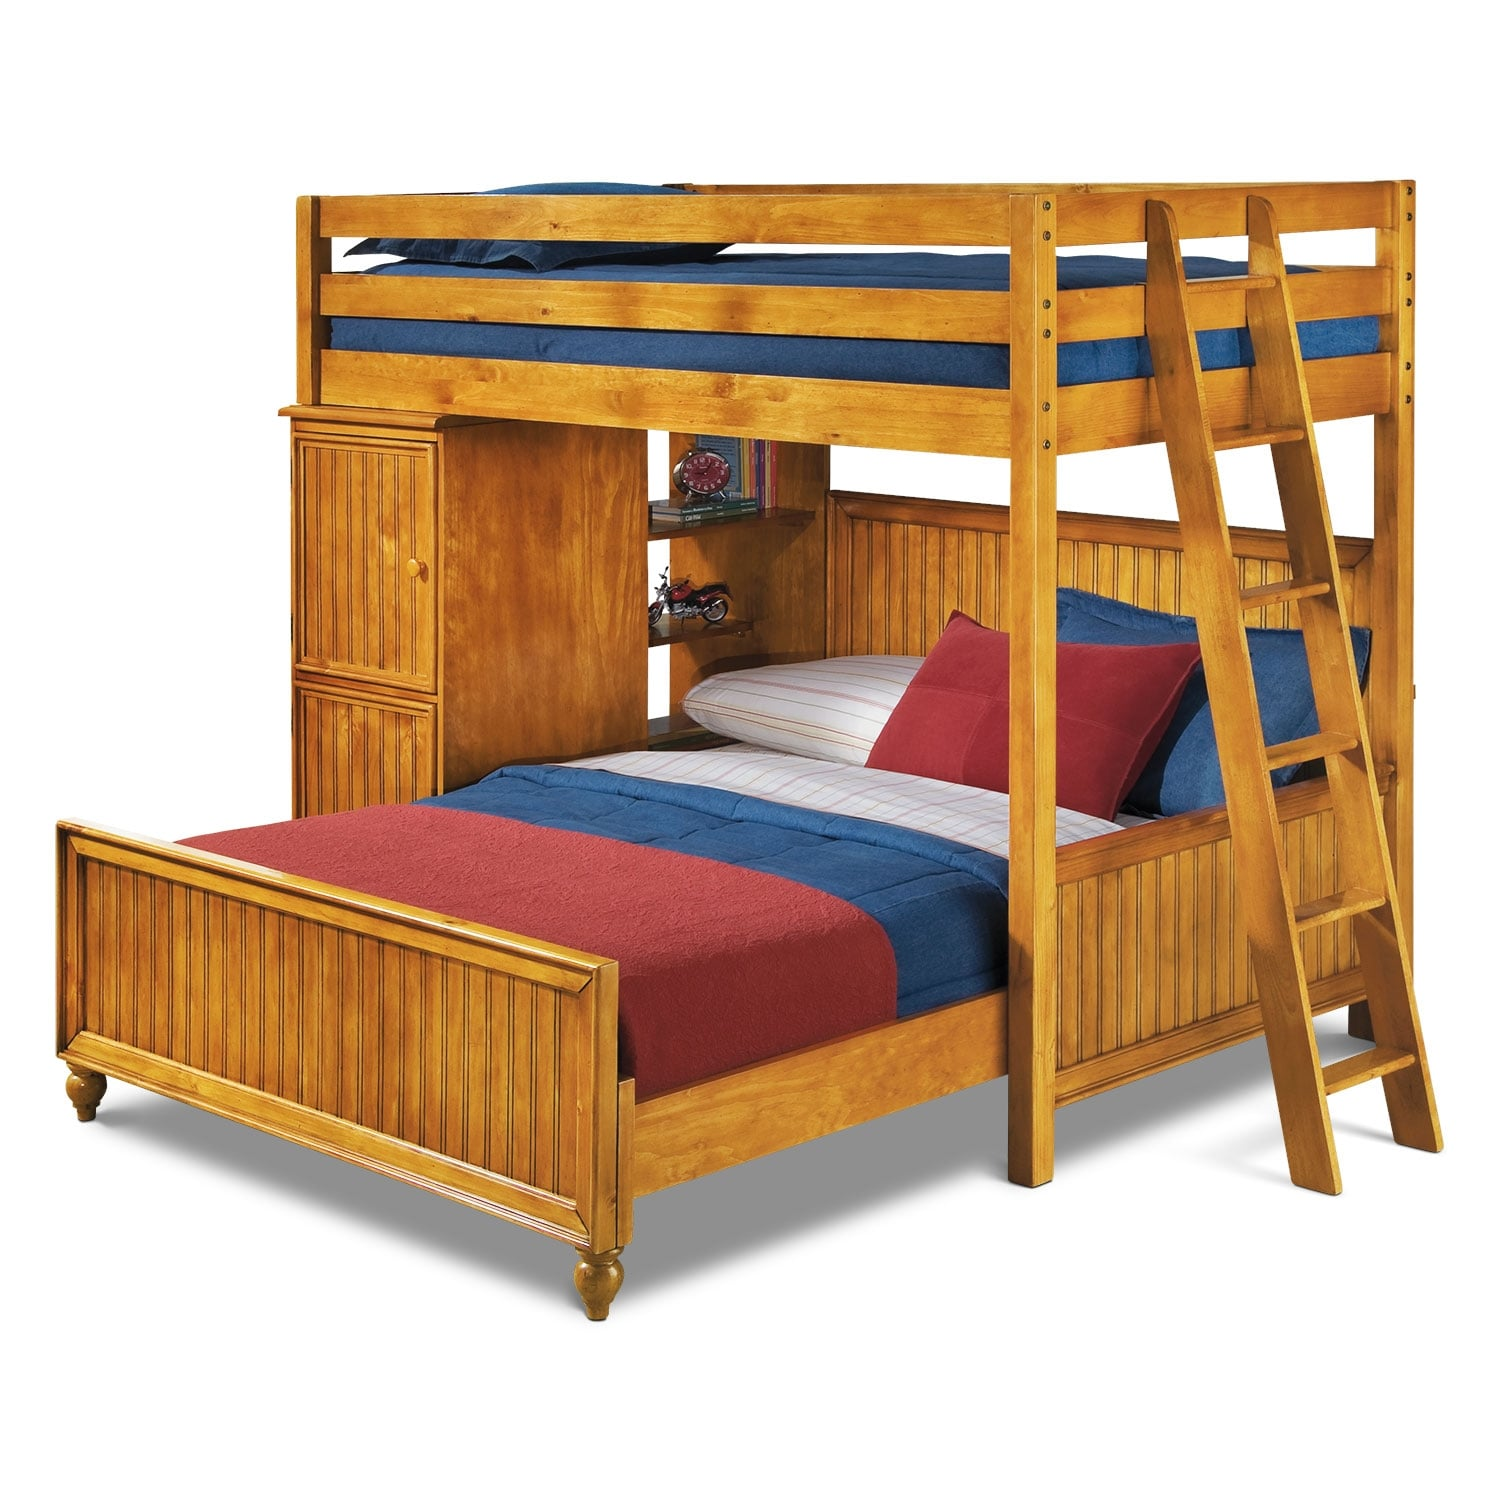 Charmant Kids Furniture   Colorworks Loft Bed With Full Bed   Honey Pine